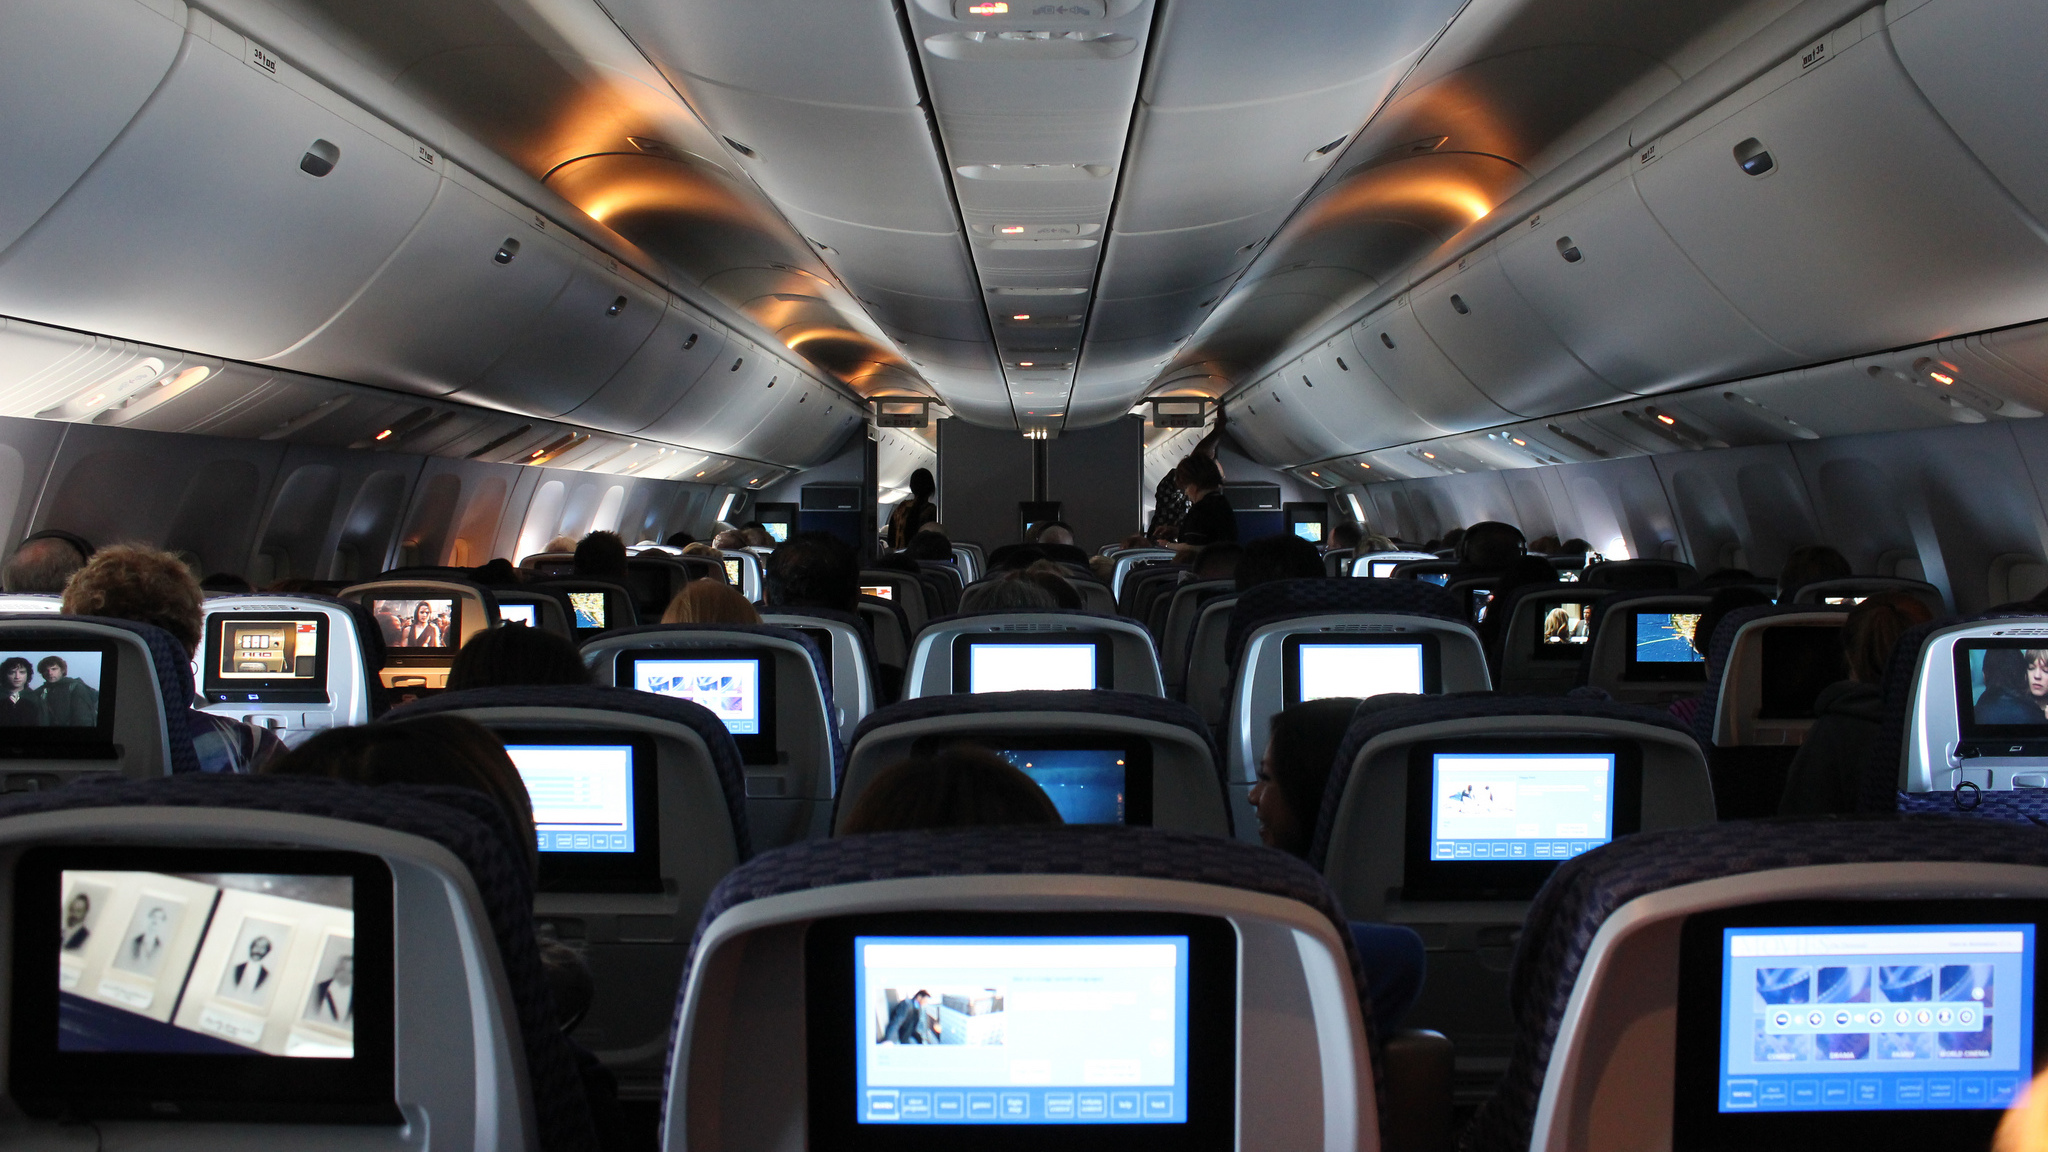 This American Airlines Is Adding Free Live Tv To Its